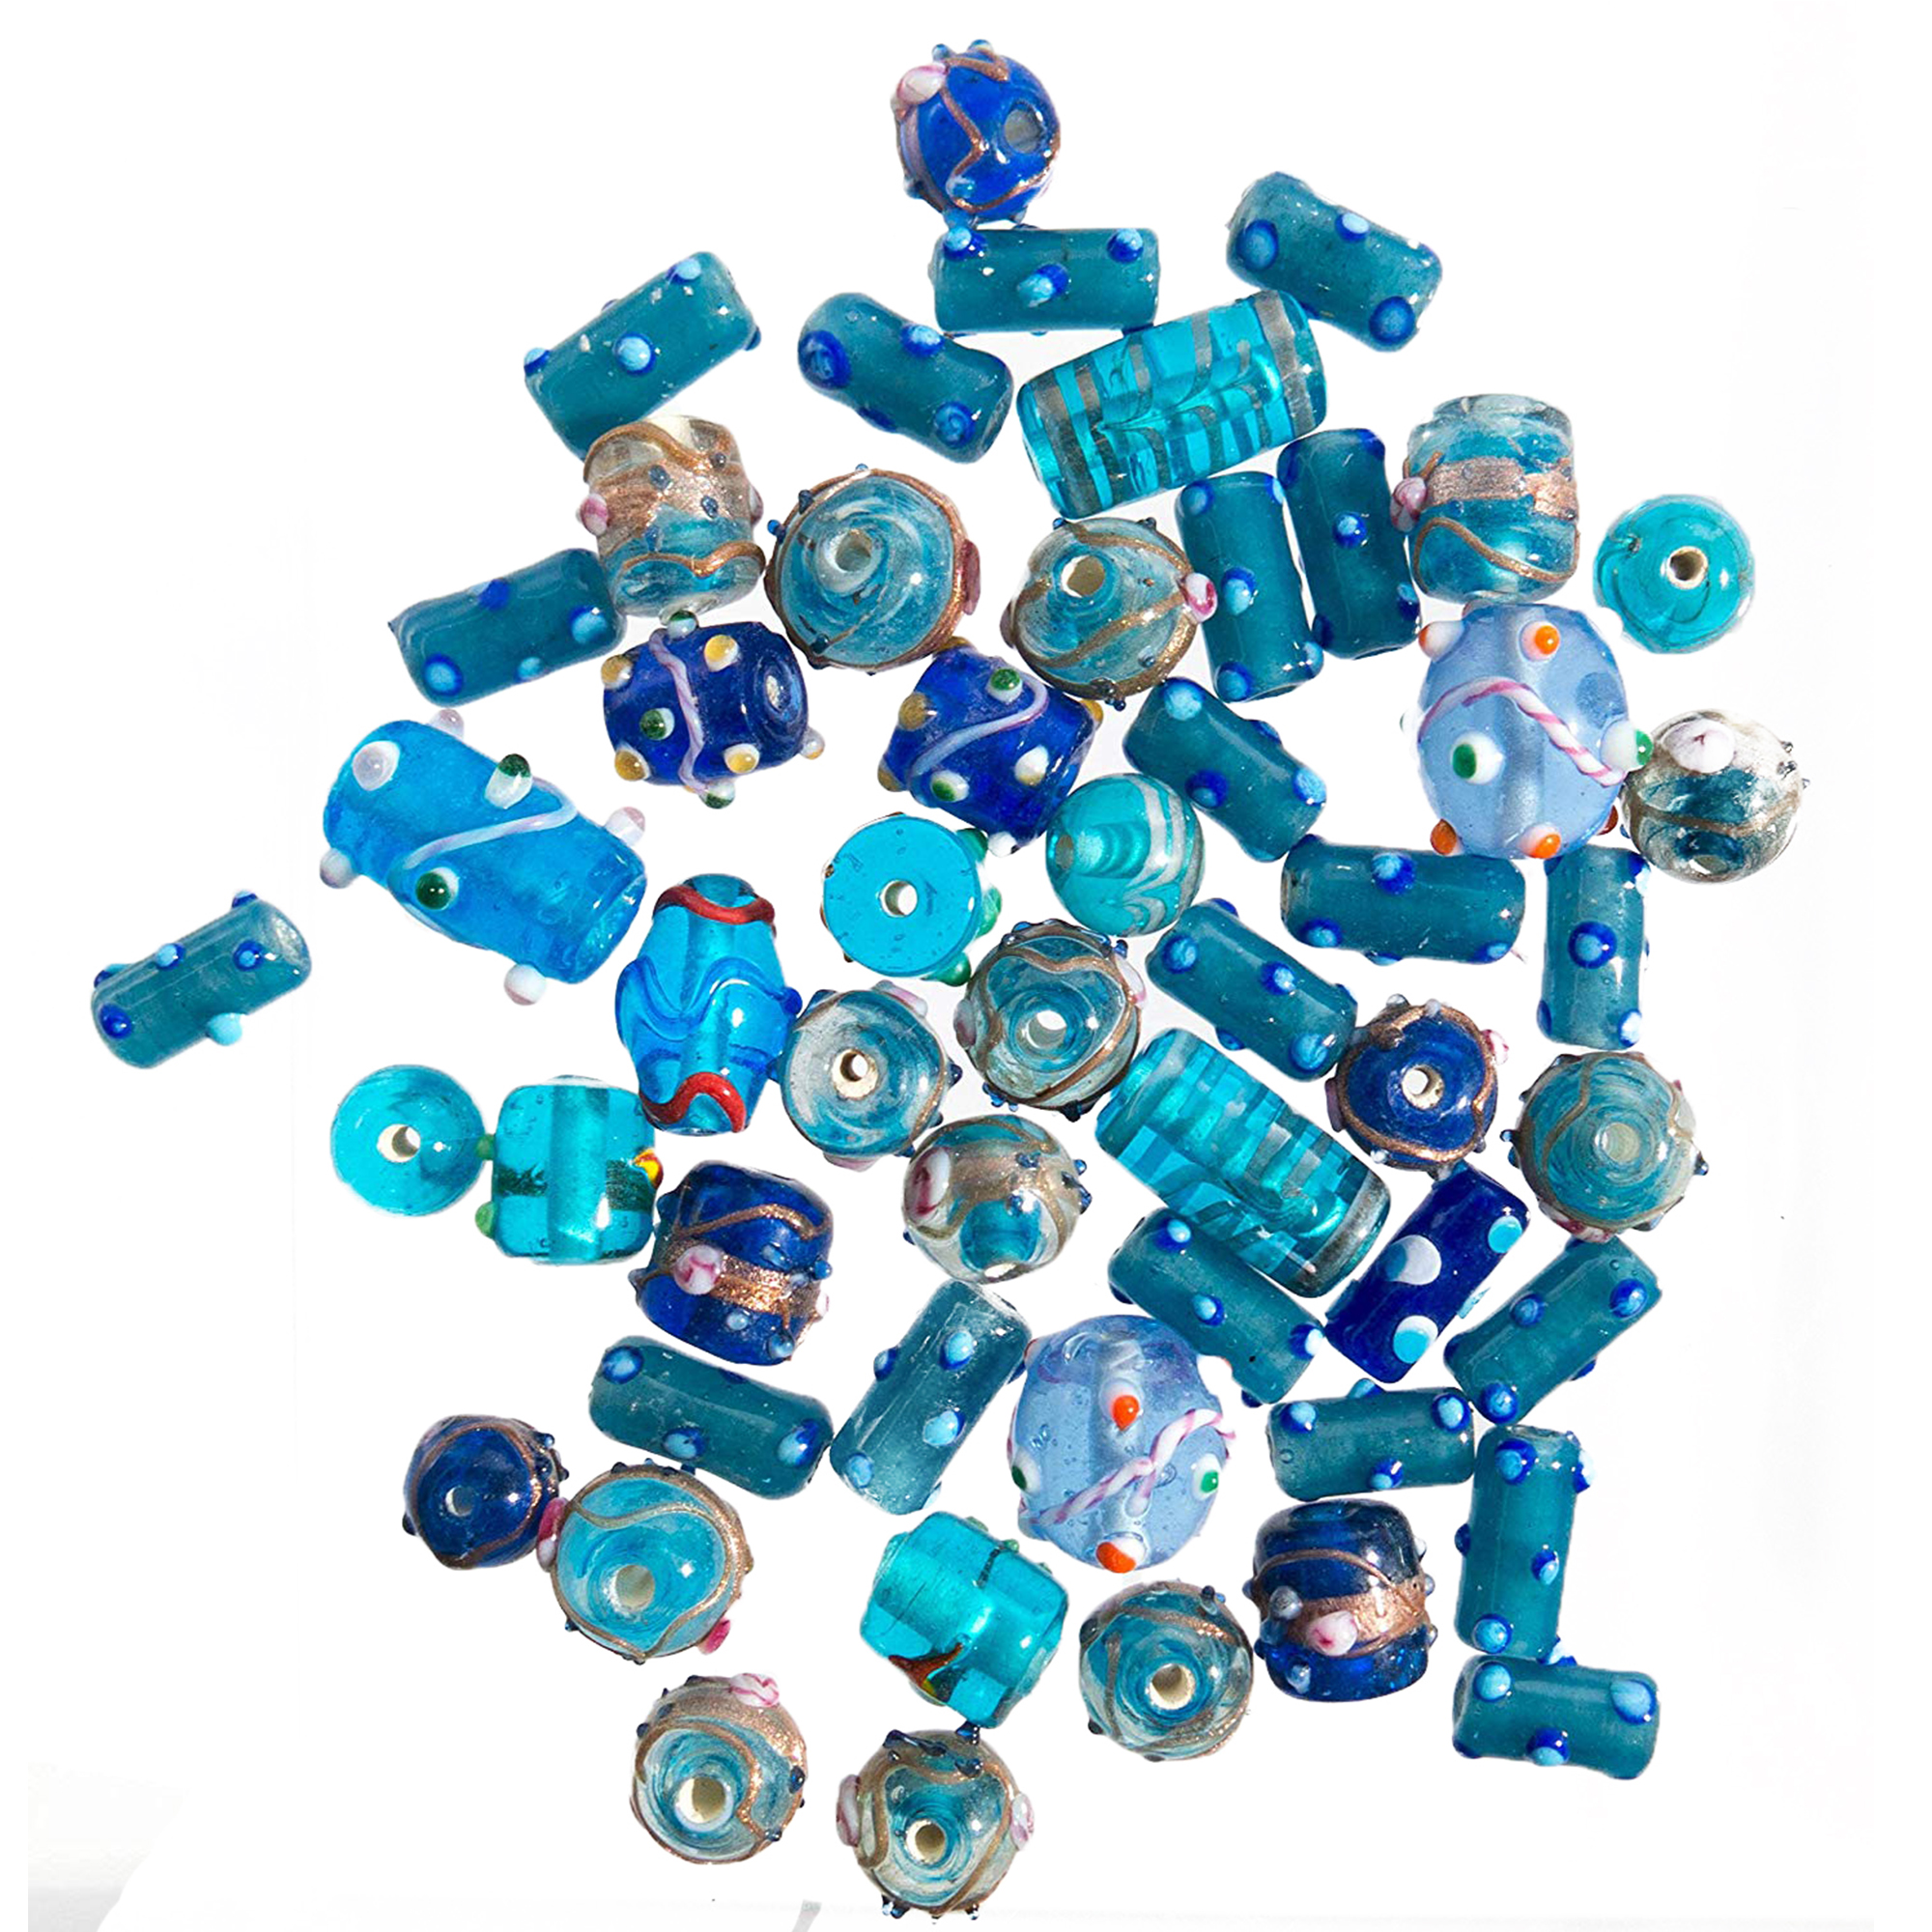 Glass Beads for Jewelry Making for Adults 60-80 Pieces Lampwork Murano Loose Beads for DIY and Fashion Designs – Wholesale Jewelry Craft Supplies (Blue- 5 oz)